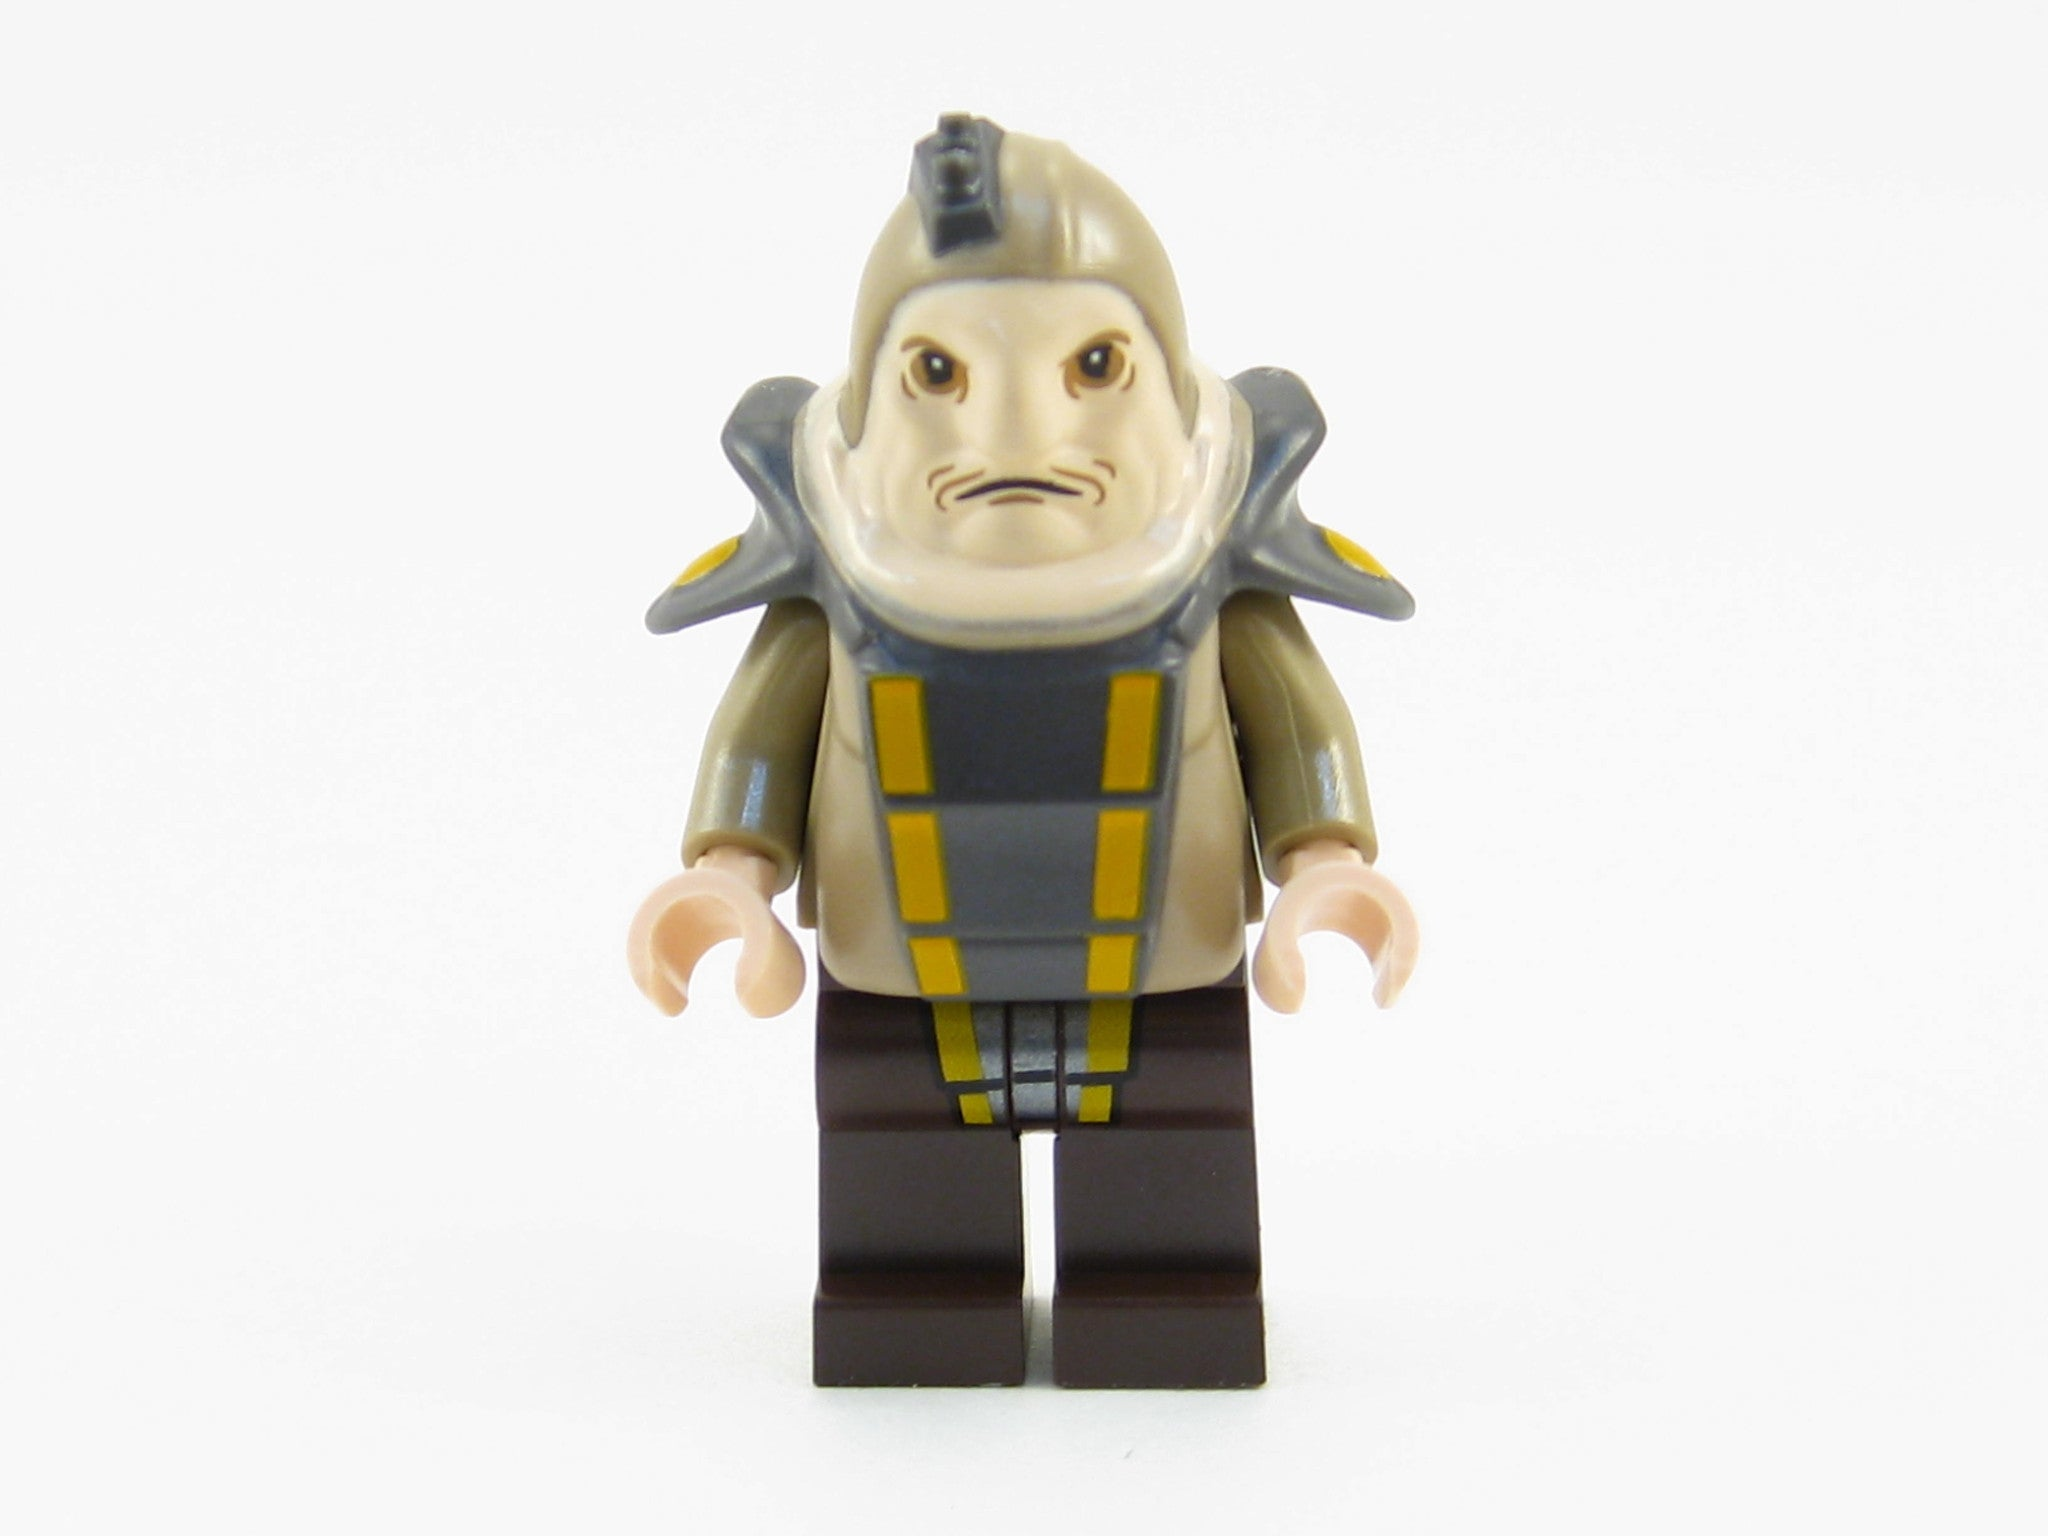 LEGO Star Wars Force Awakens Unkar Plutt Minifigure 75148 Mini Fig